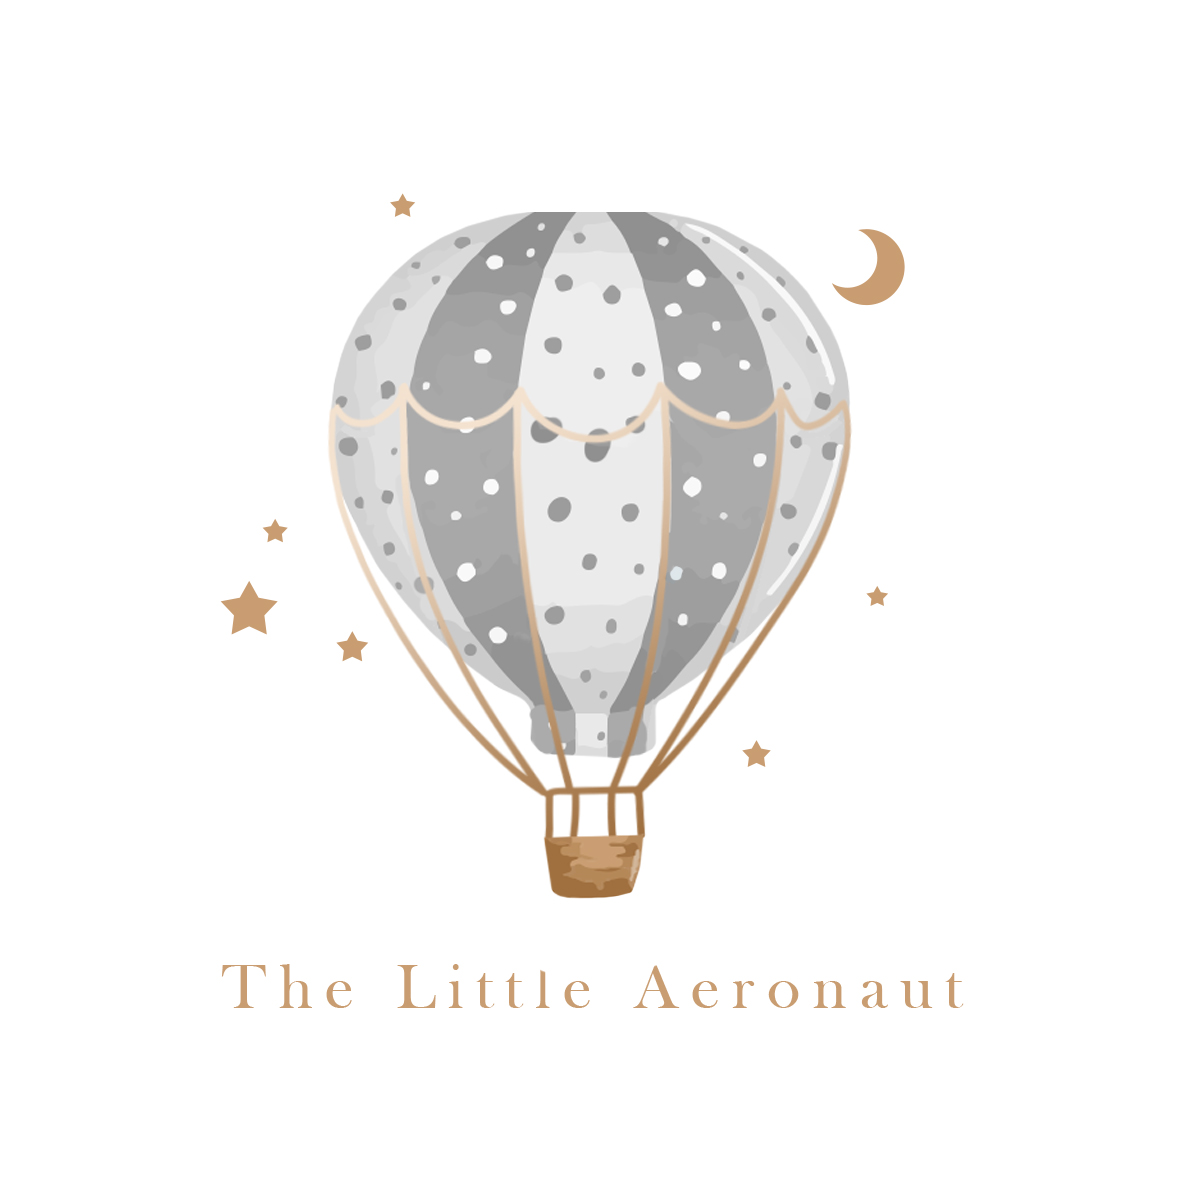 The Little Aeronaut's logo